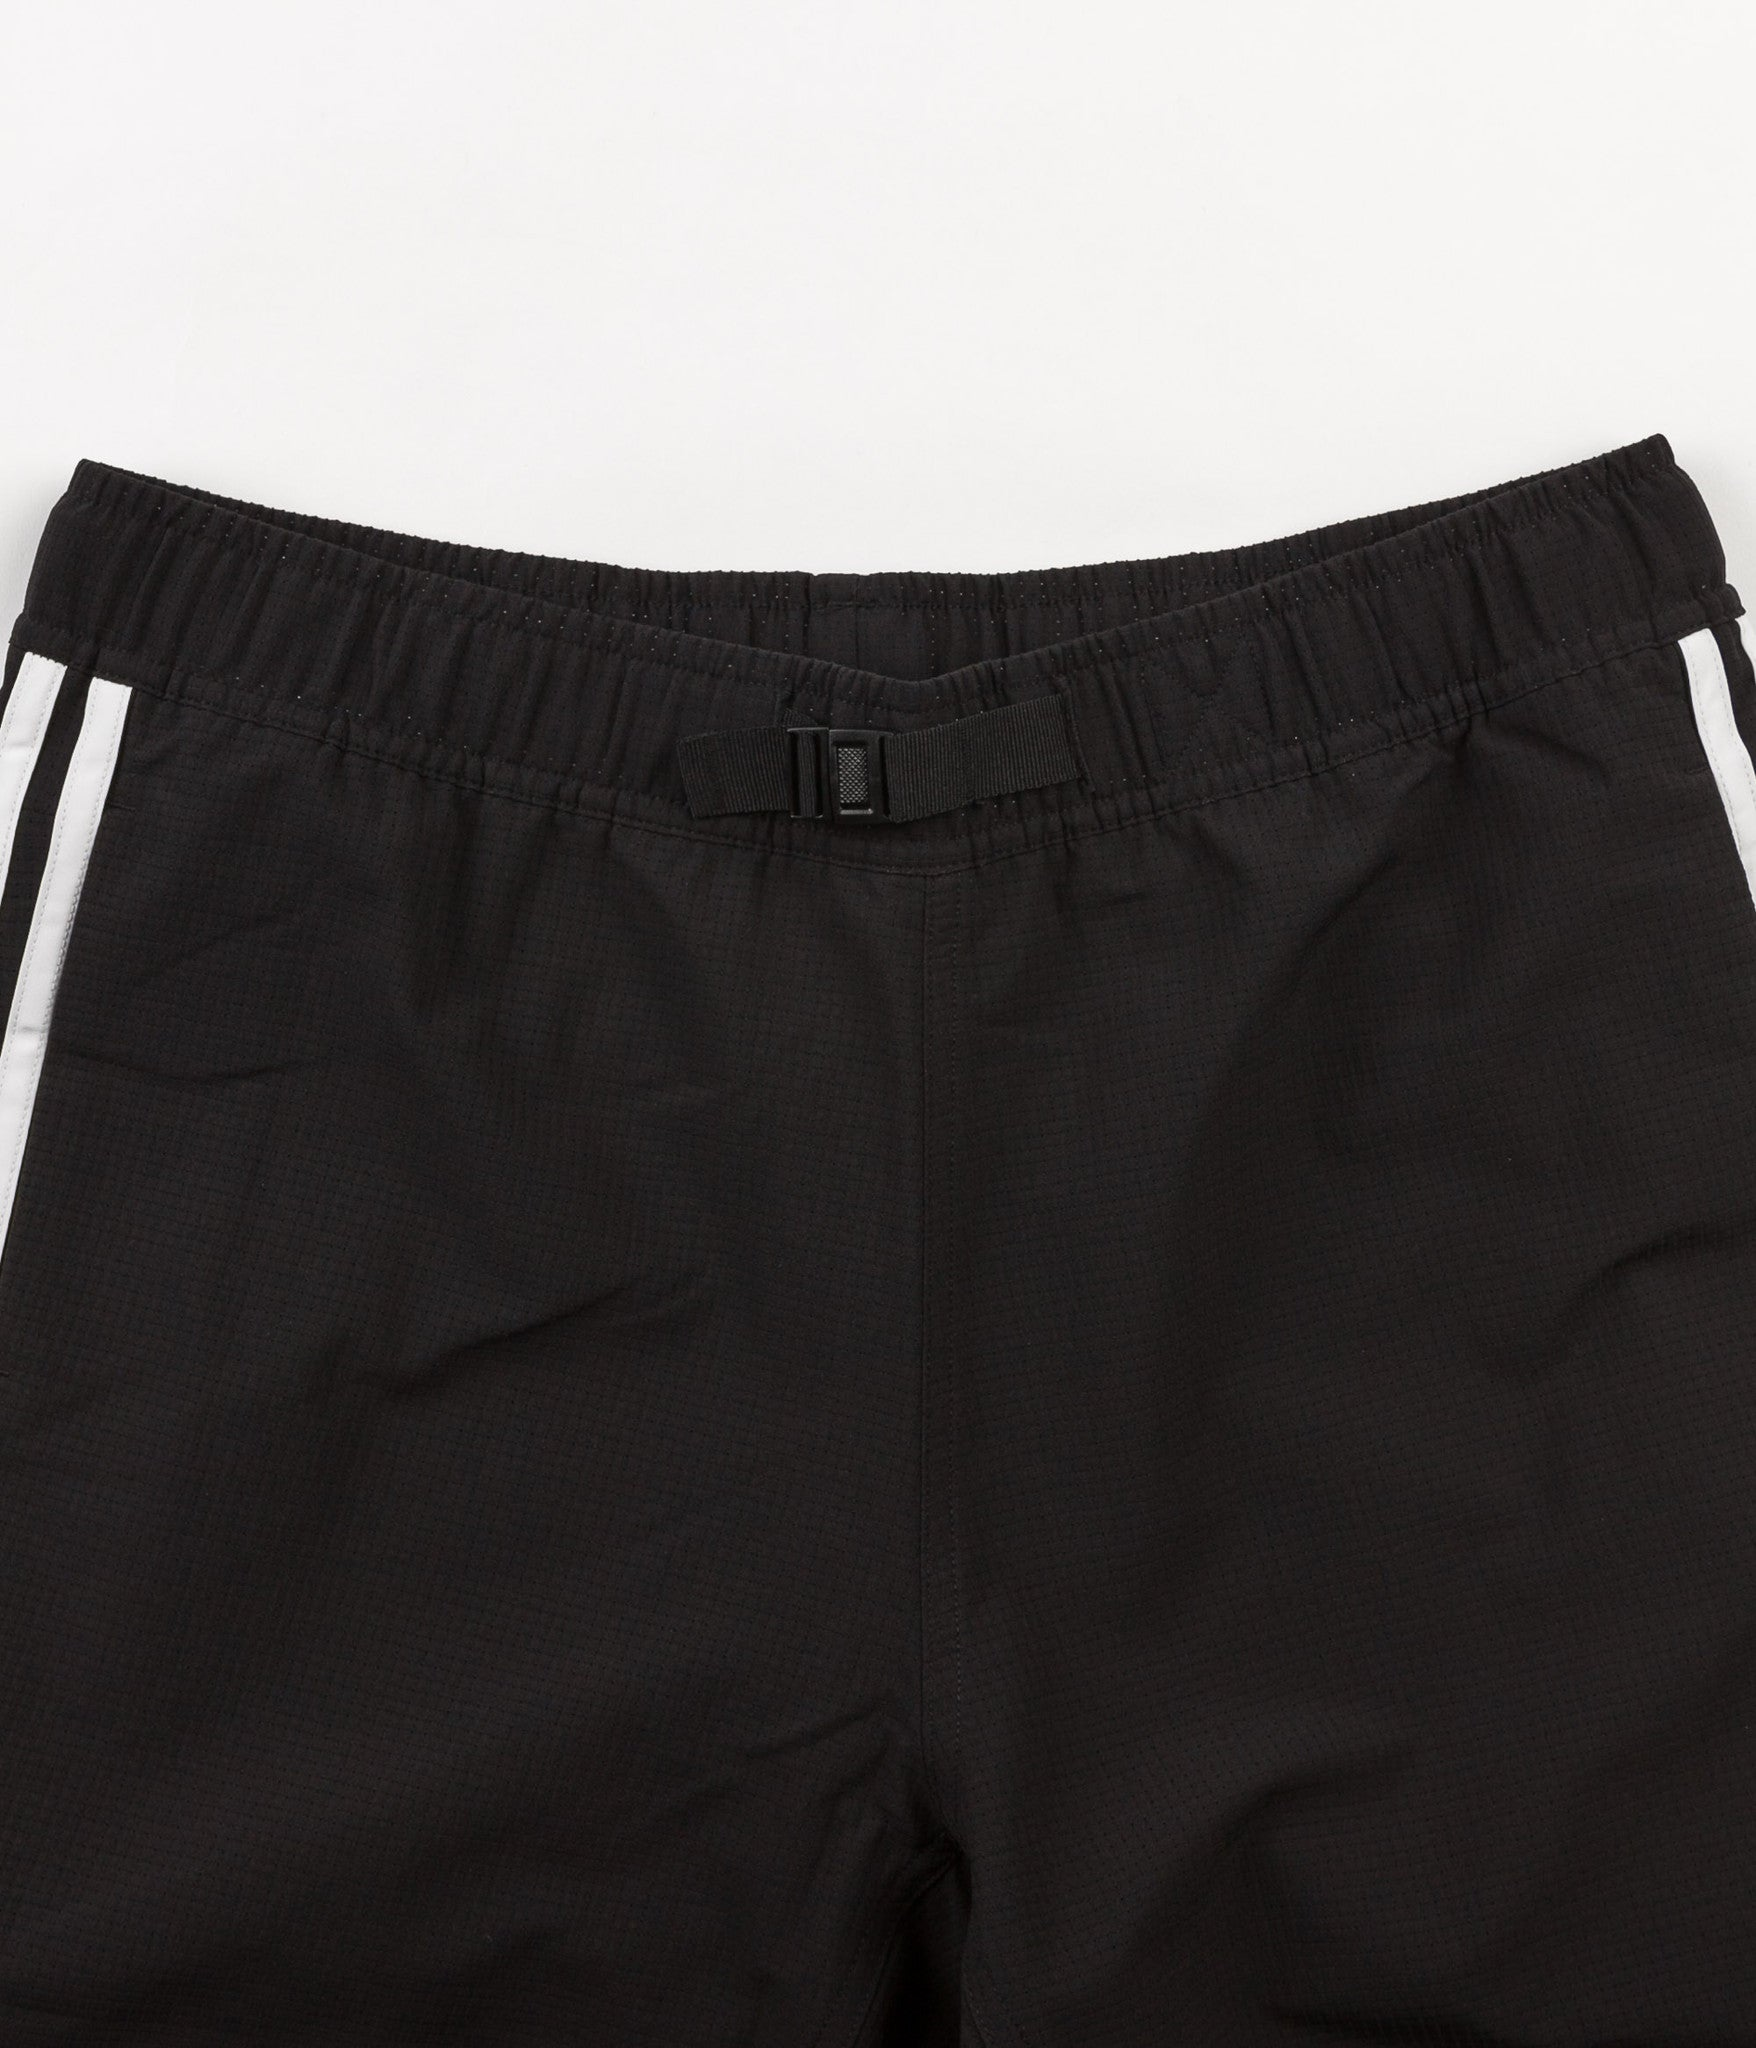 Adidas Aerotech Shorts - Black / White